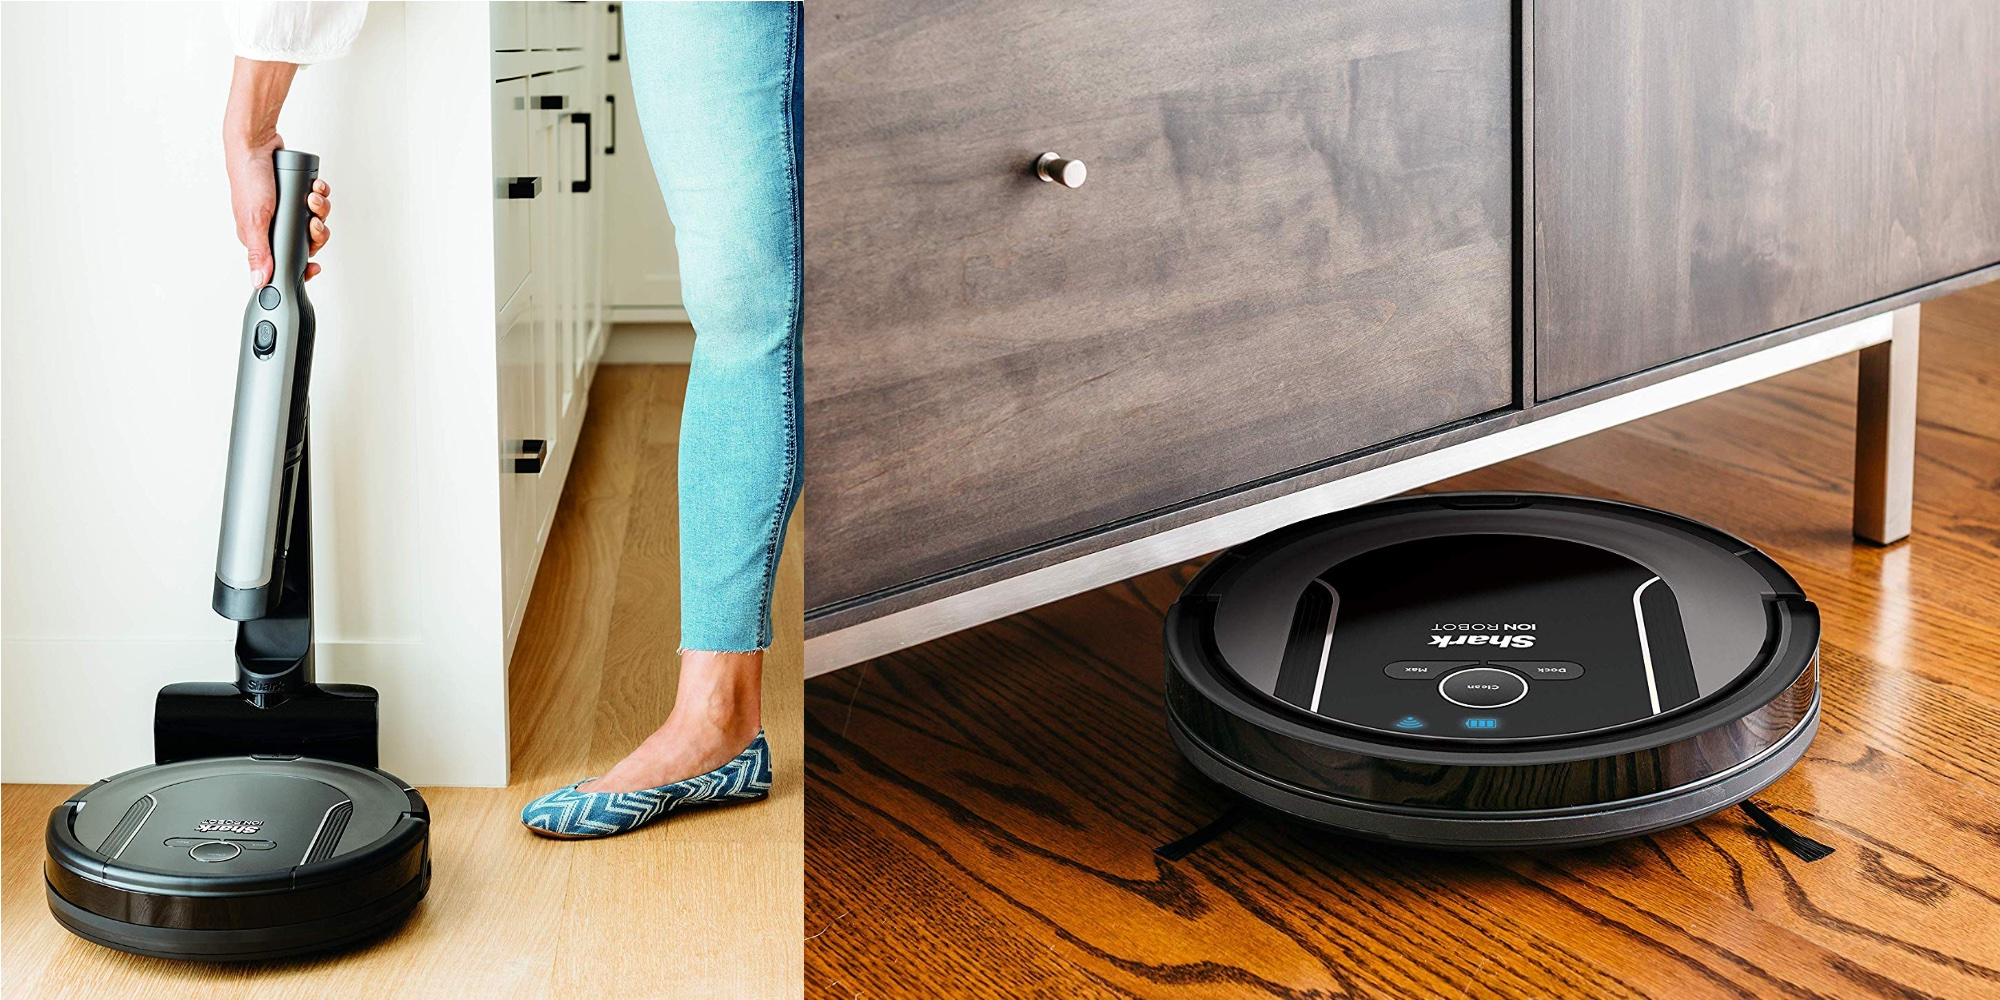 Bring Home Shark S Ion S87 Alexa Enabled Robot Vacuum And